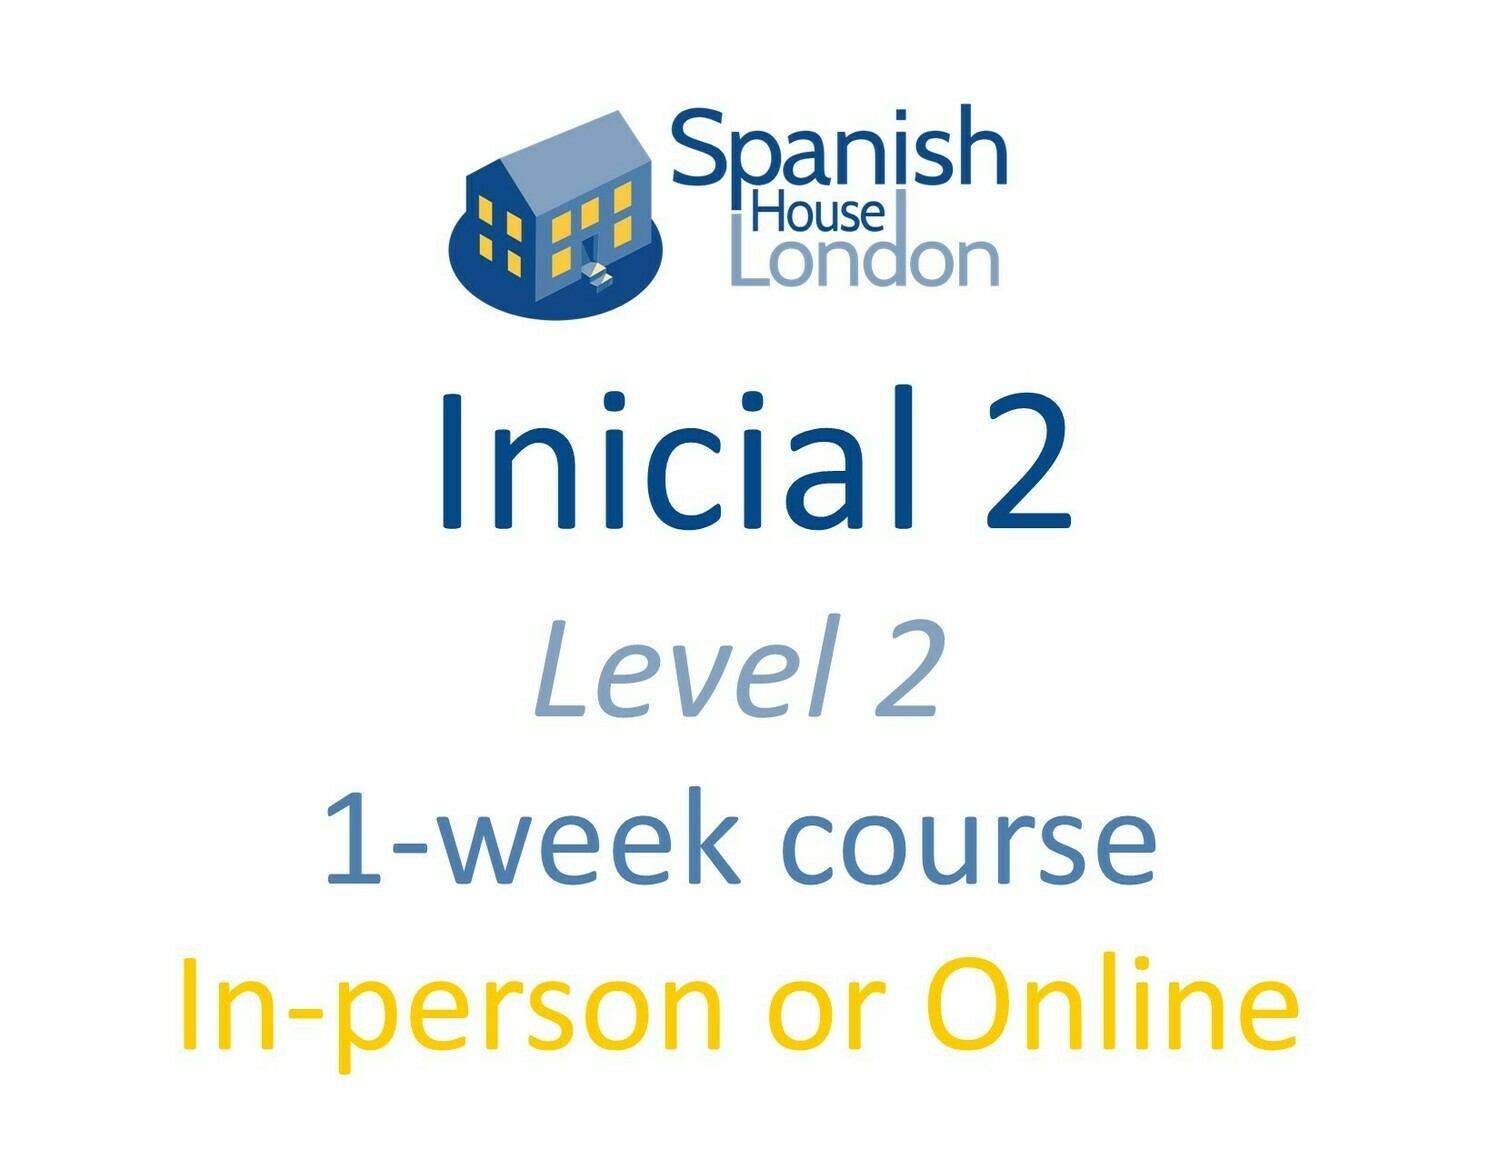 One-Week Intensive Inicial 2 Course starting on 17th May at 10am in Clapham North